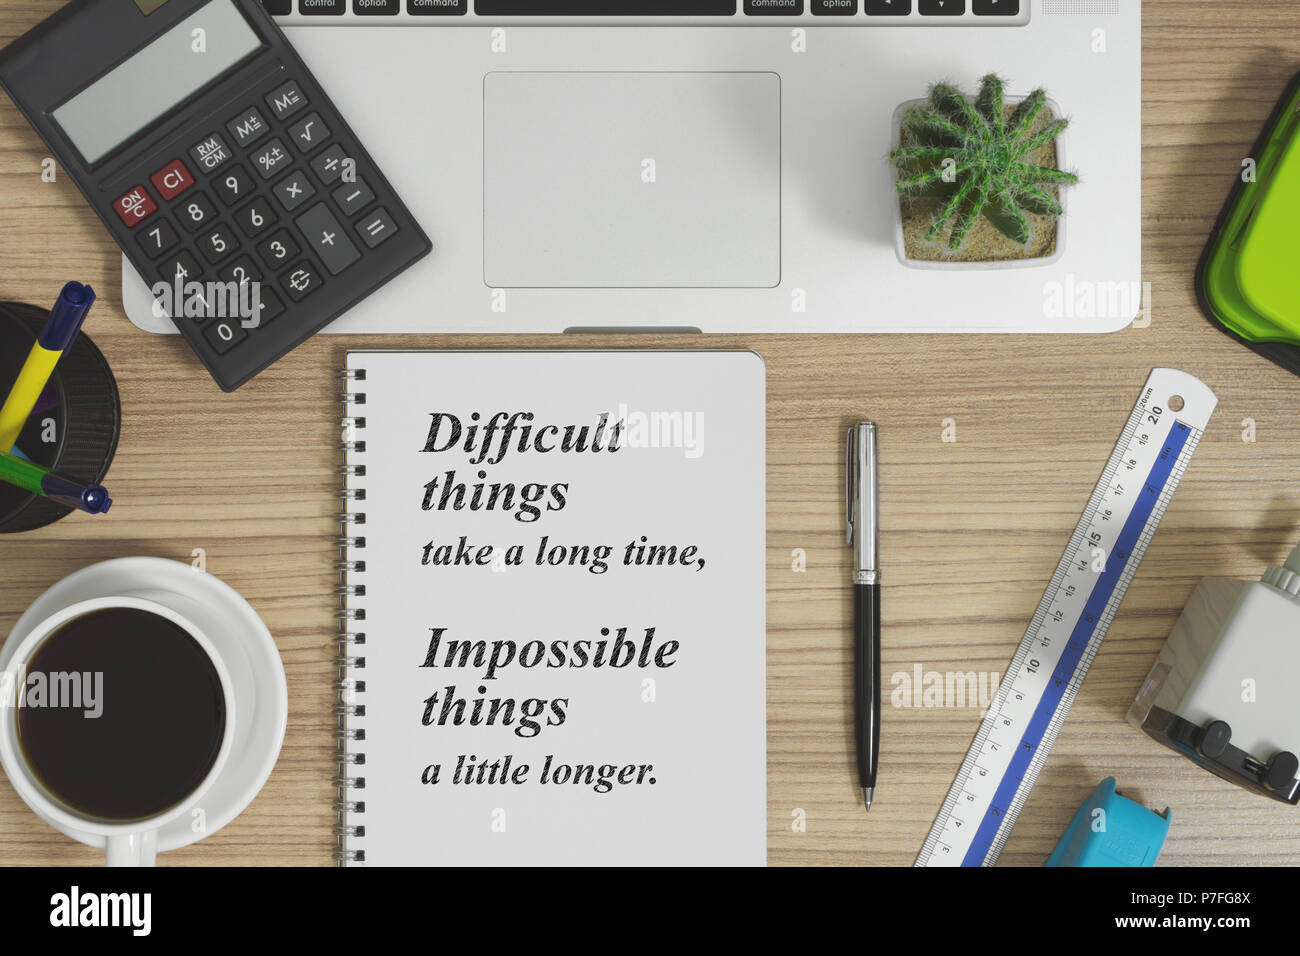 Office supplies on wood office desk. Notebook with motivational and inspirational quote. - Stock Image